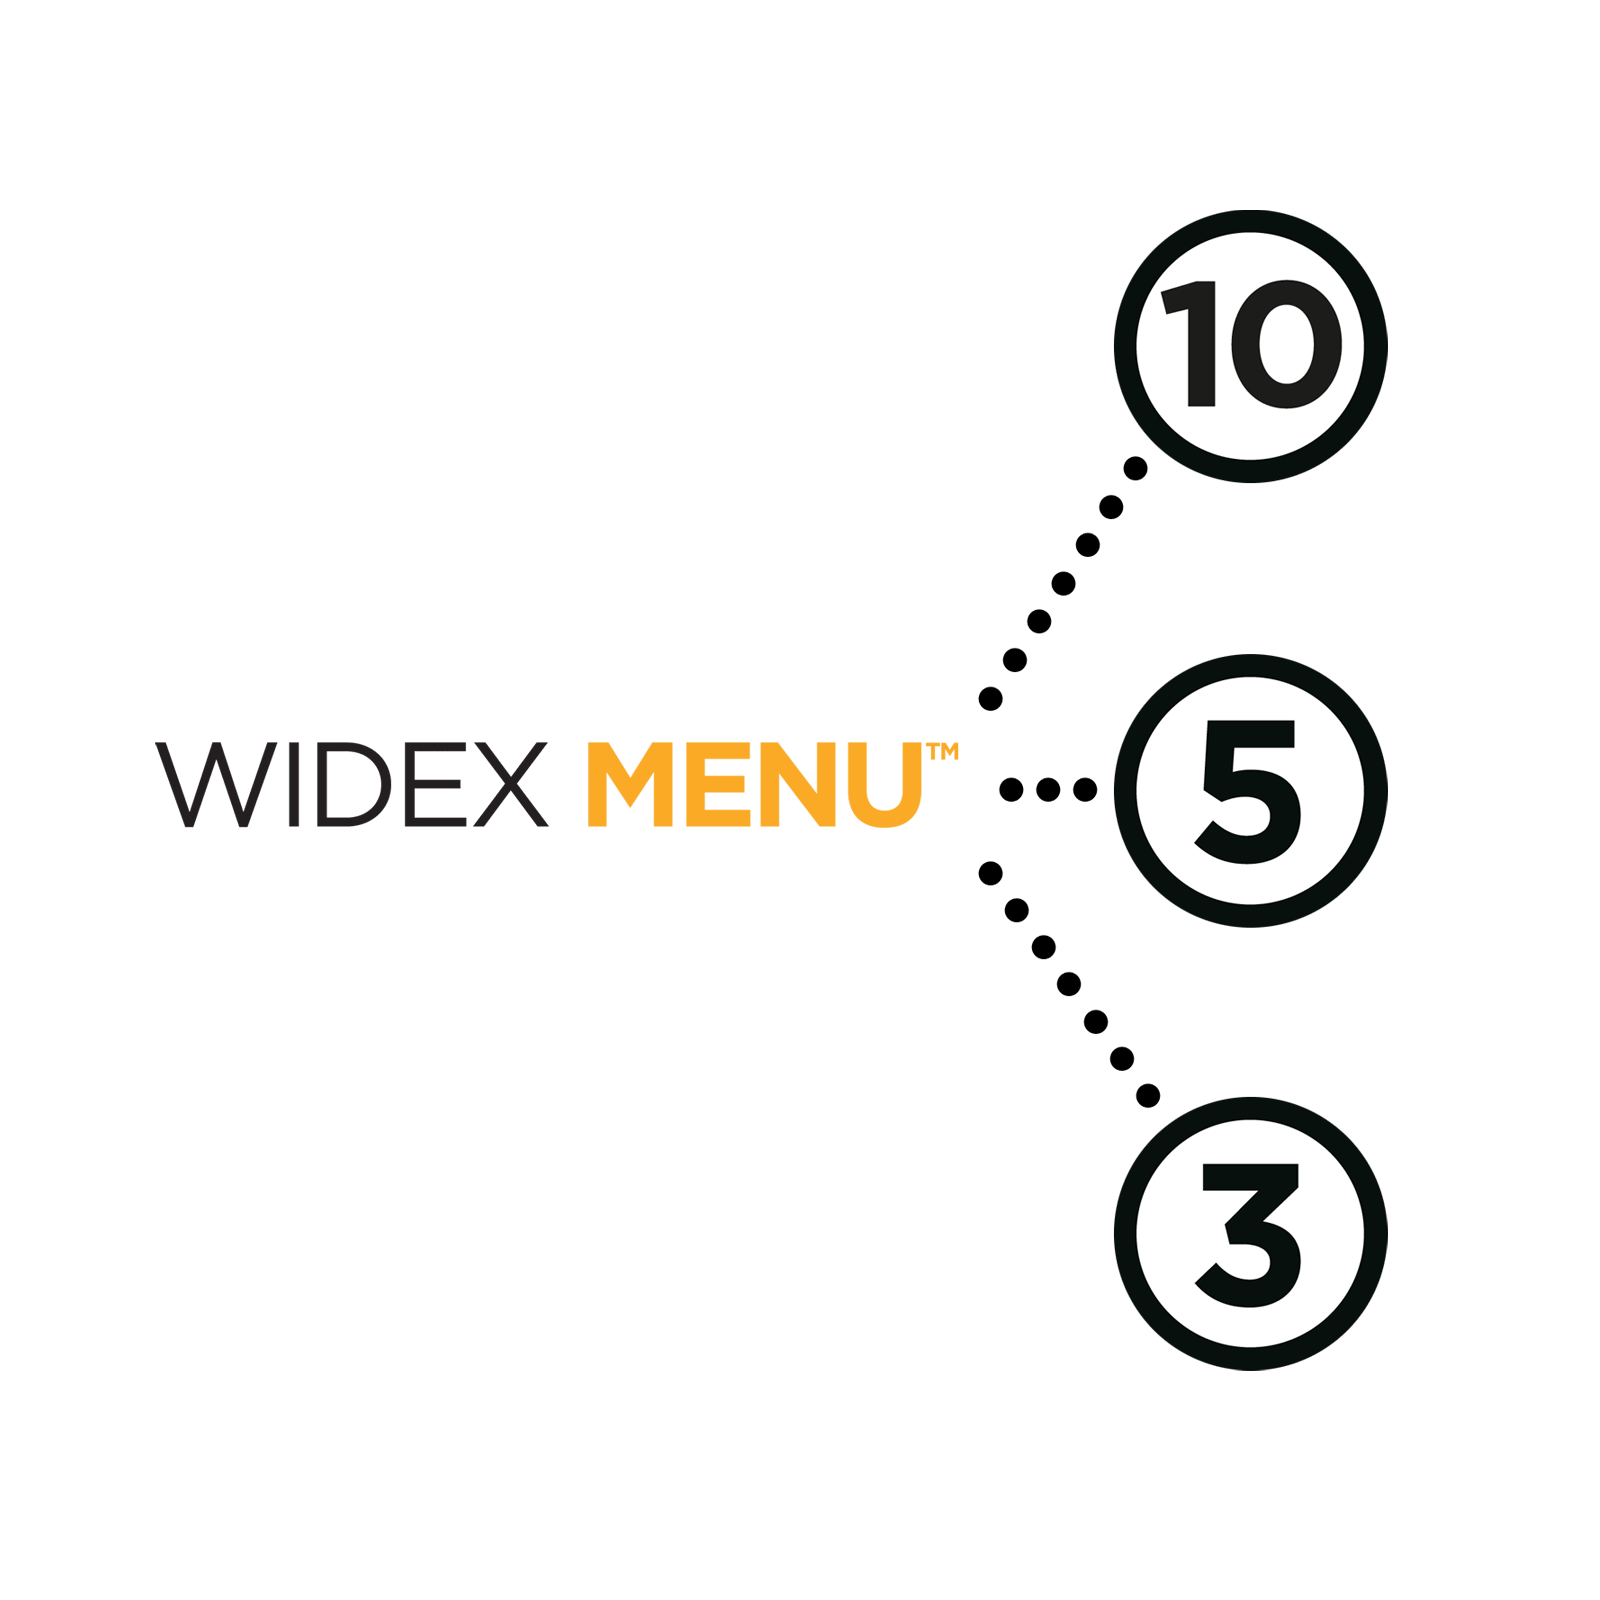 widex-menu-the-flexible-choice